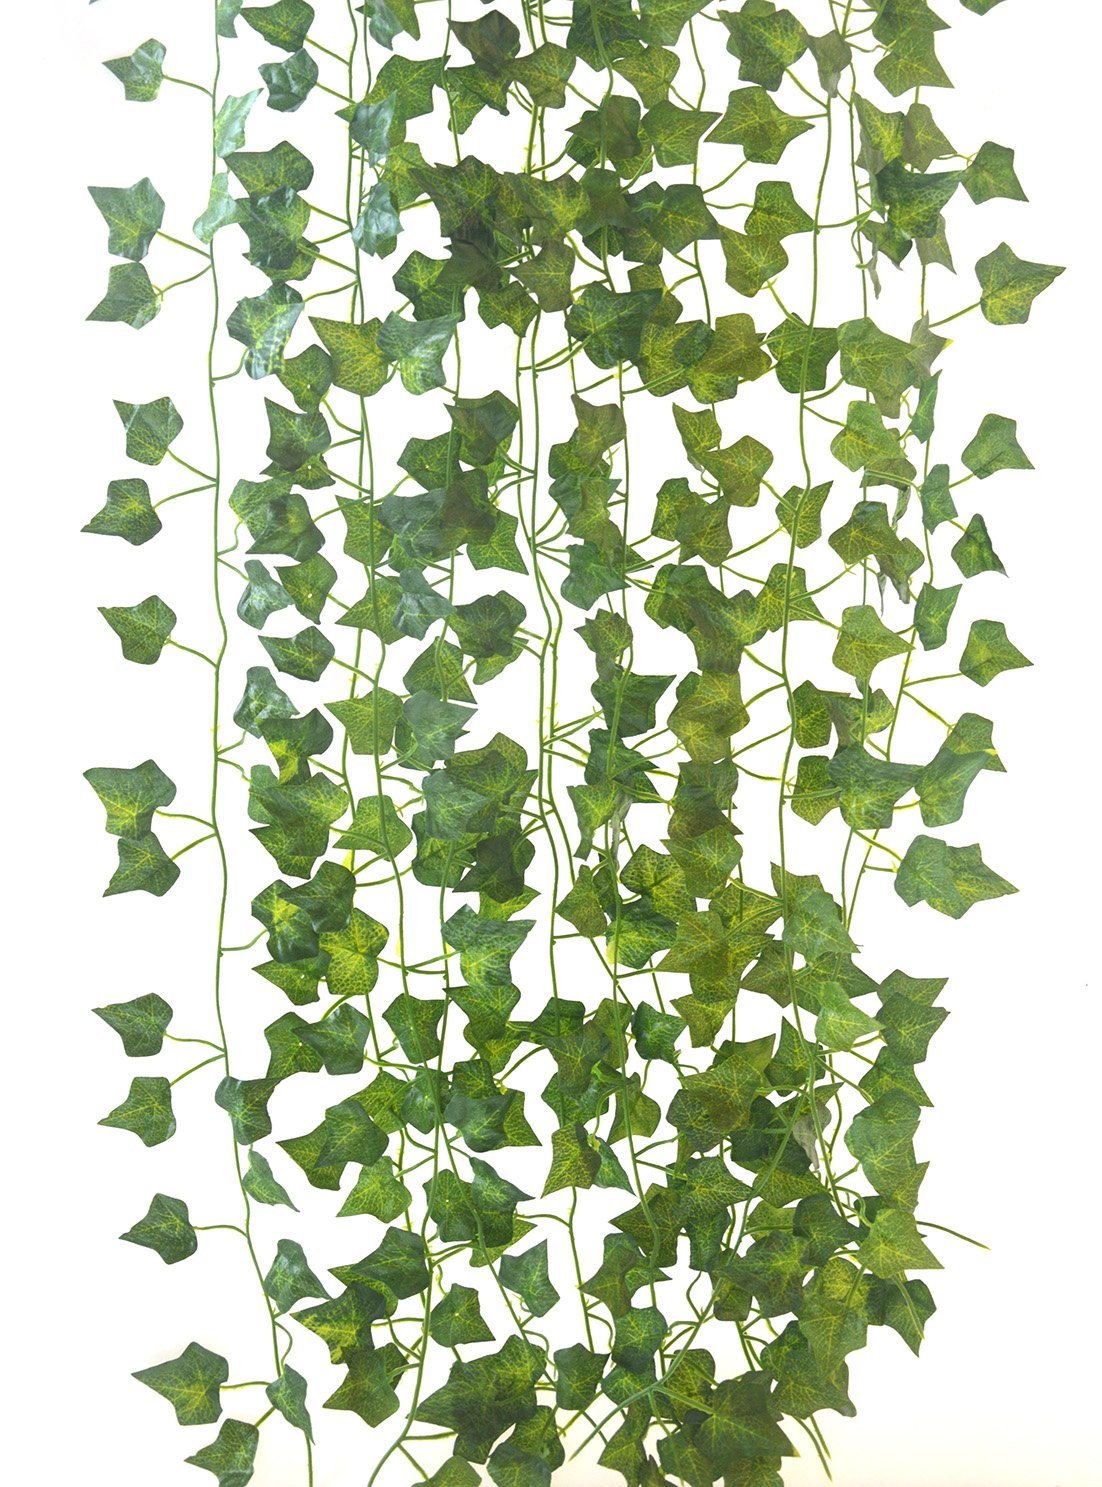 84Ft-12 pcs Artificial Ivy Leaf Garland Fake Plants Flowers Ivy Artificial Hanging Vines Artificial Leaves Garland Fake Ivy Plant leaf Garland Decor for kitchen Wedding Party Garden Outdoor (Ivy)